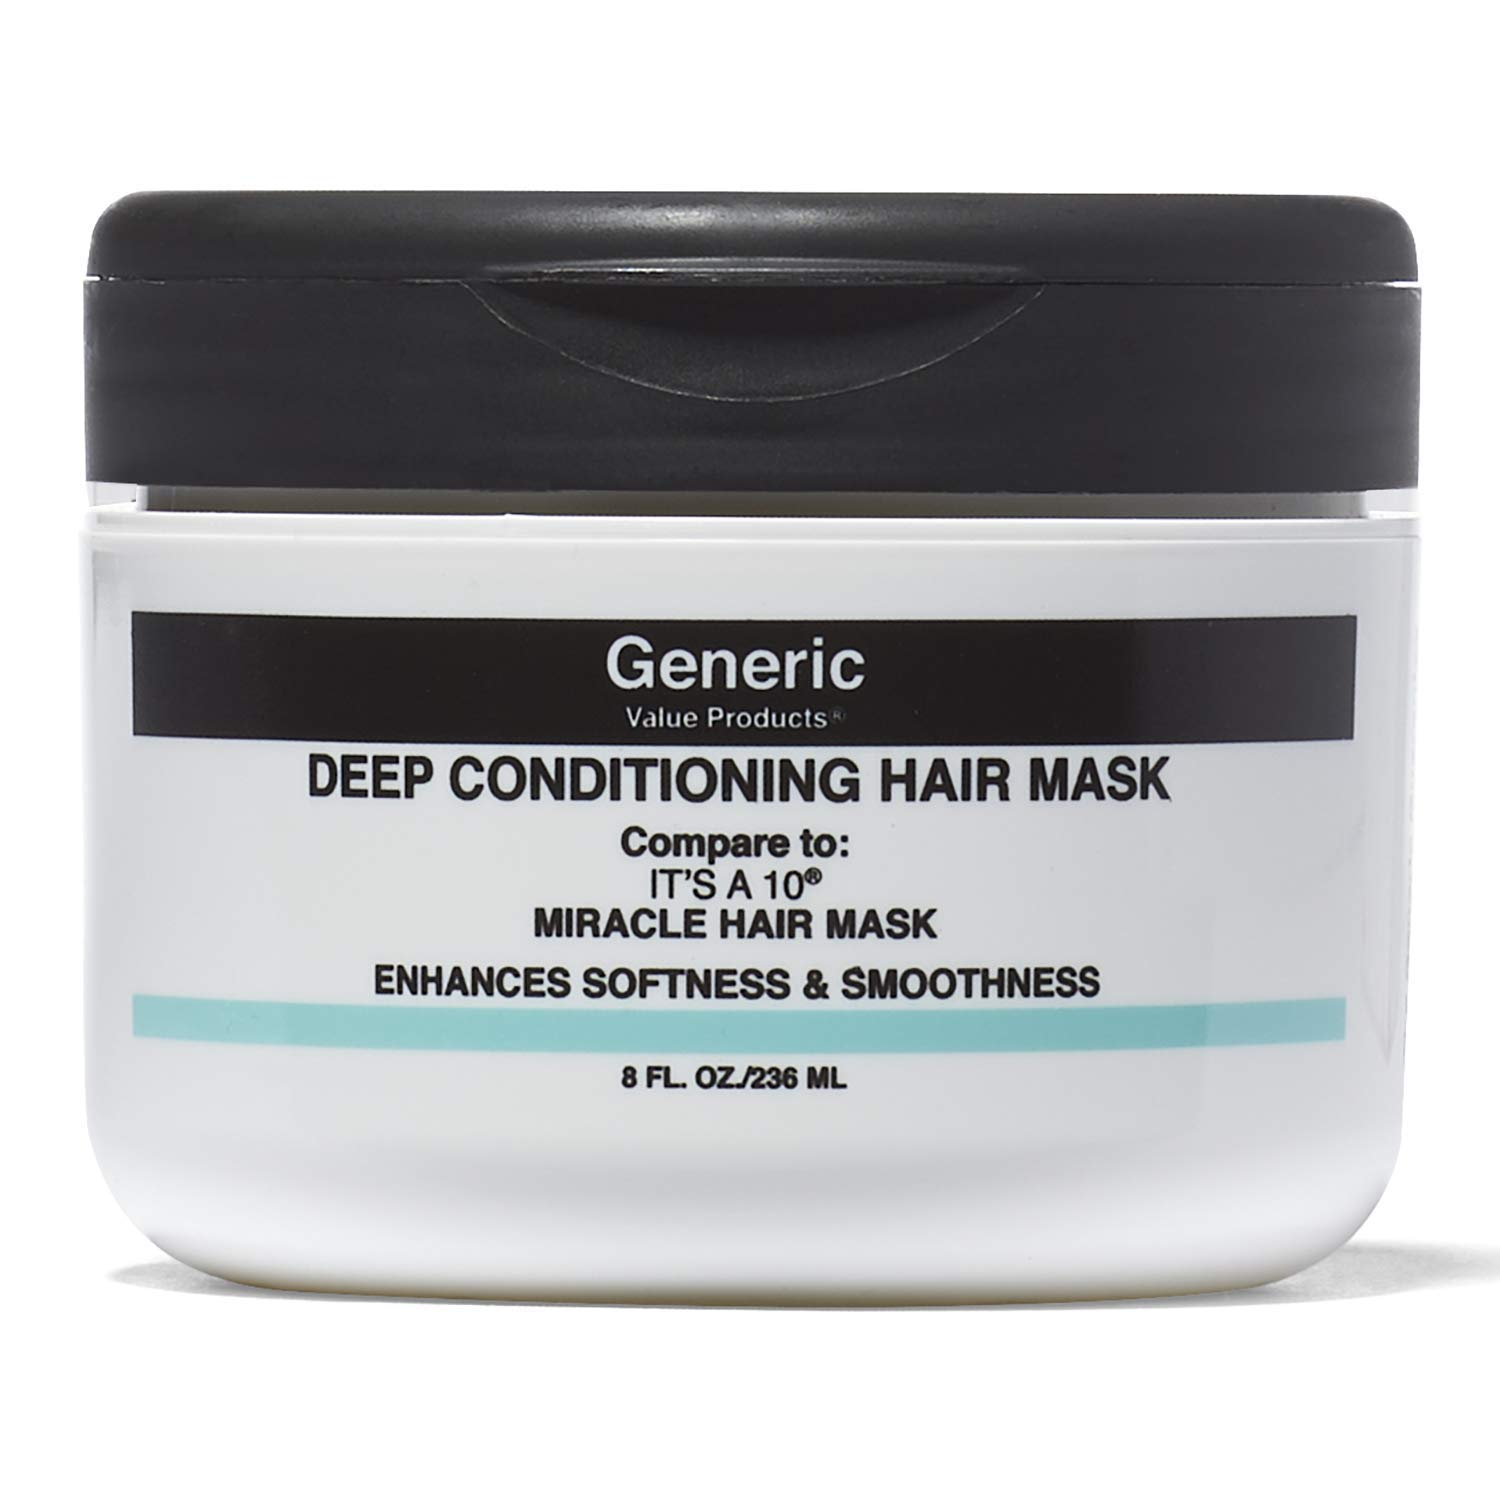 GVP Deep Conditioning Hair Mask Compare to 10 Miracle Hair Mask